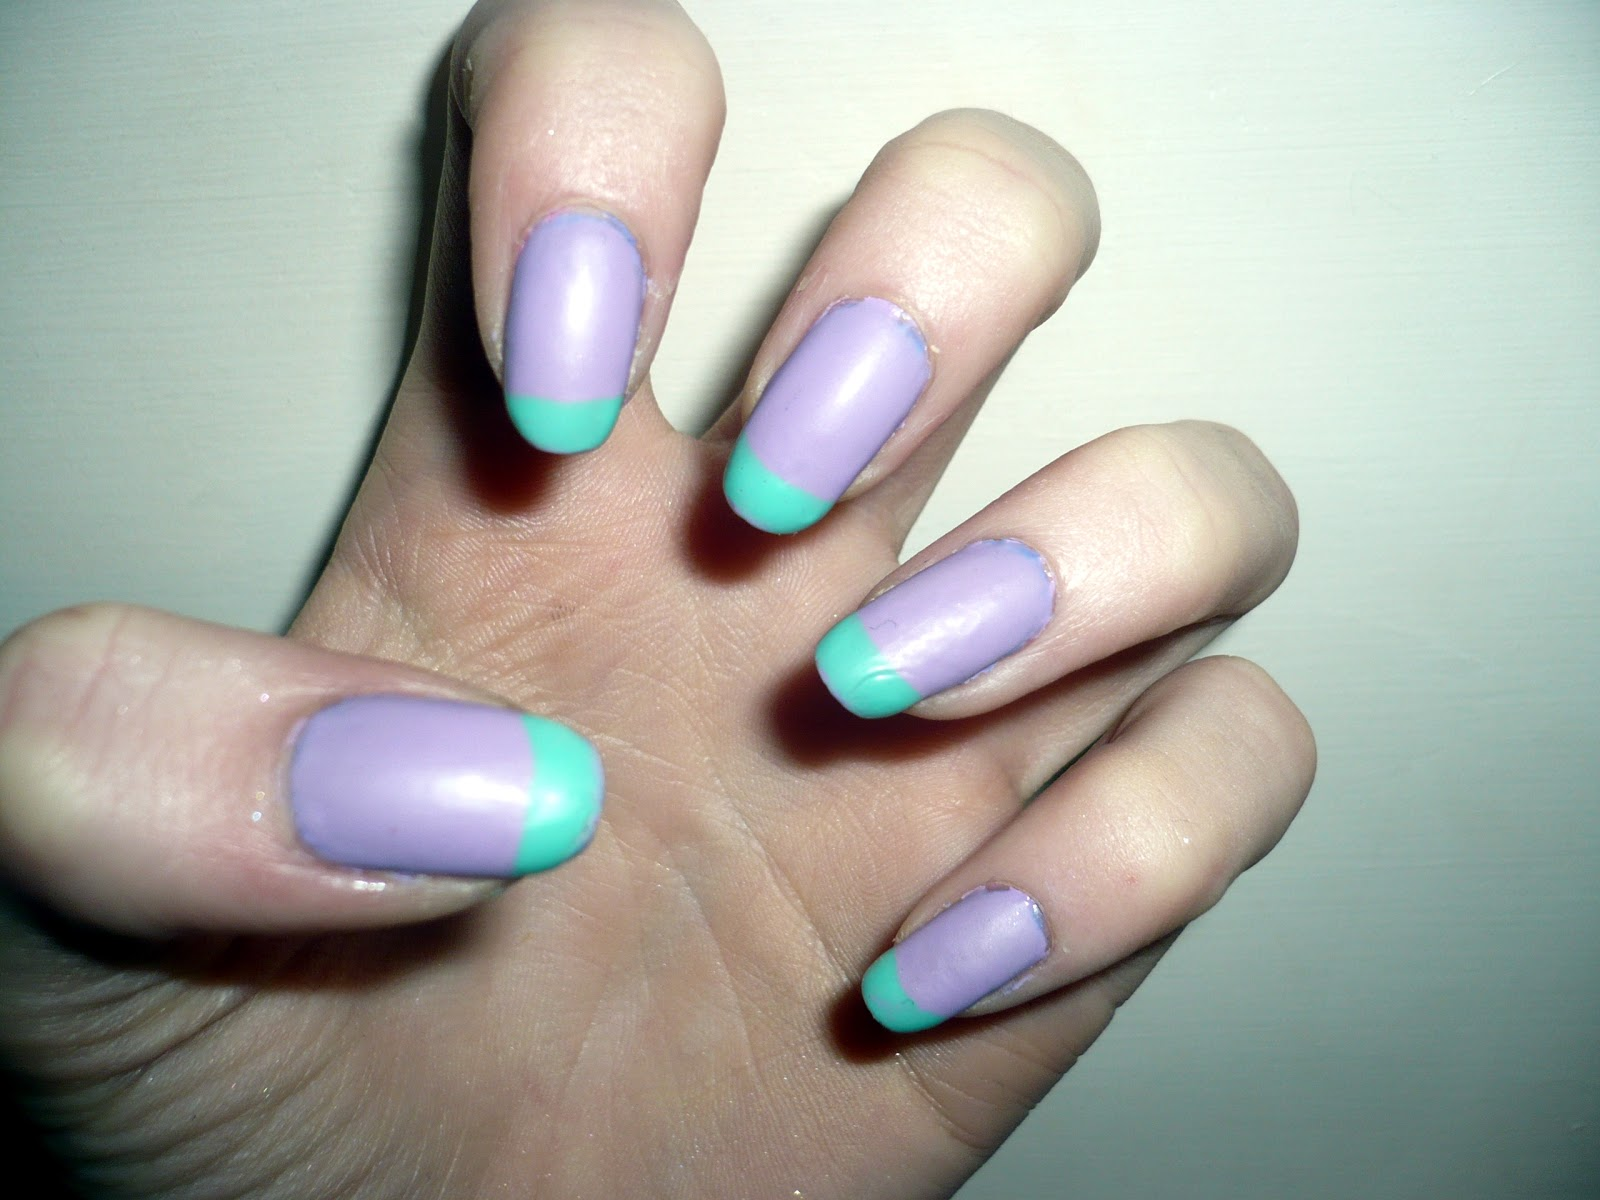 79 Best Images About Nail Art On Pinterest Make Up, Beauty And Enamels